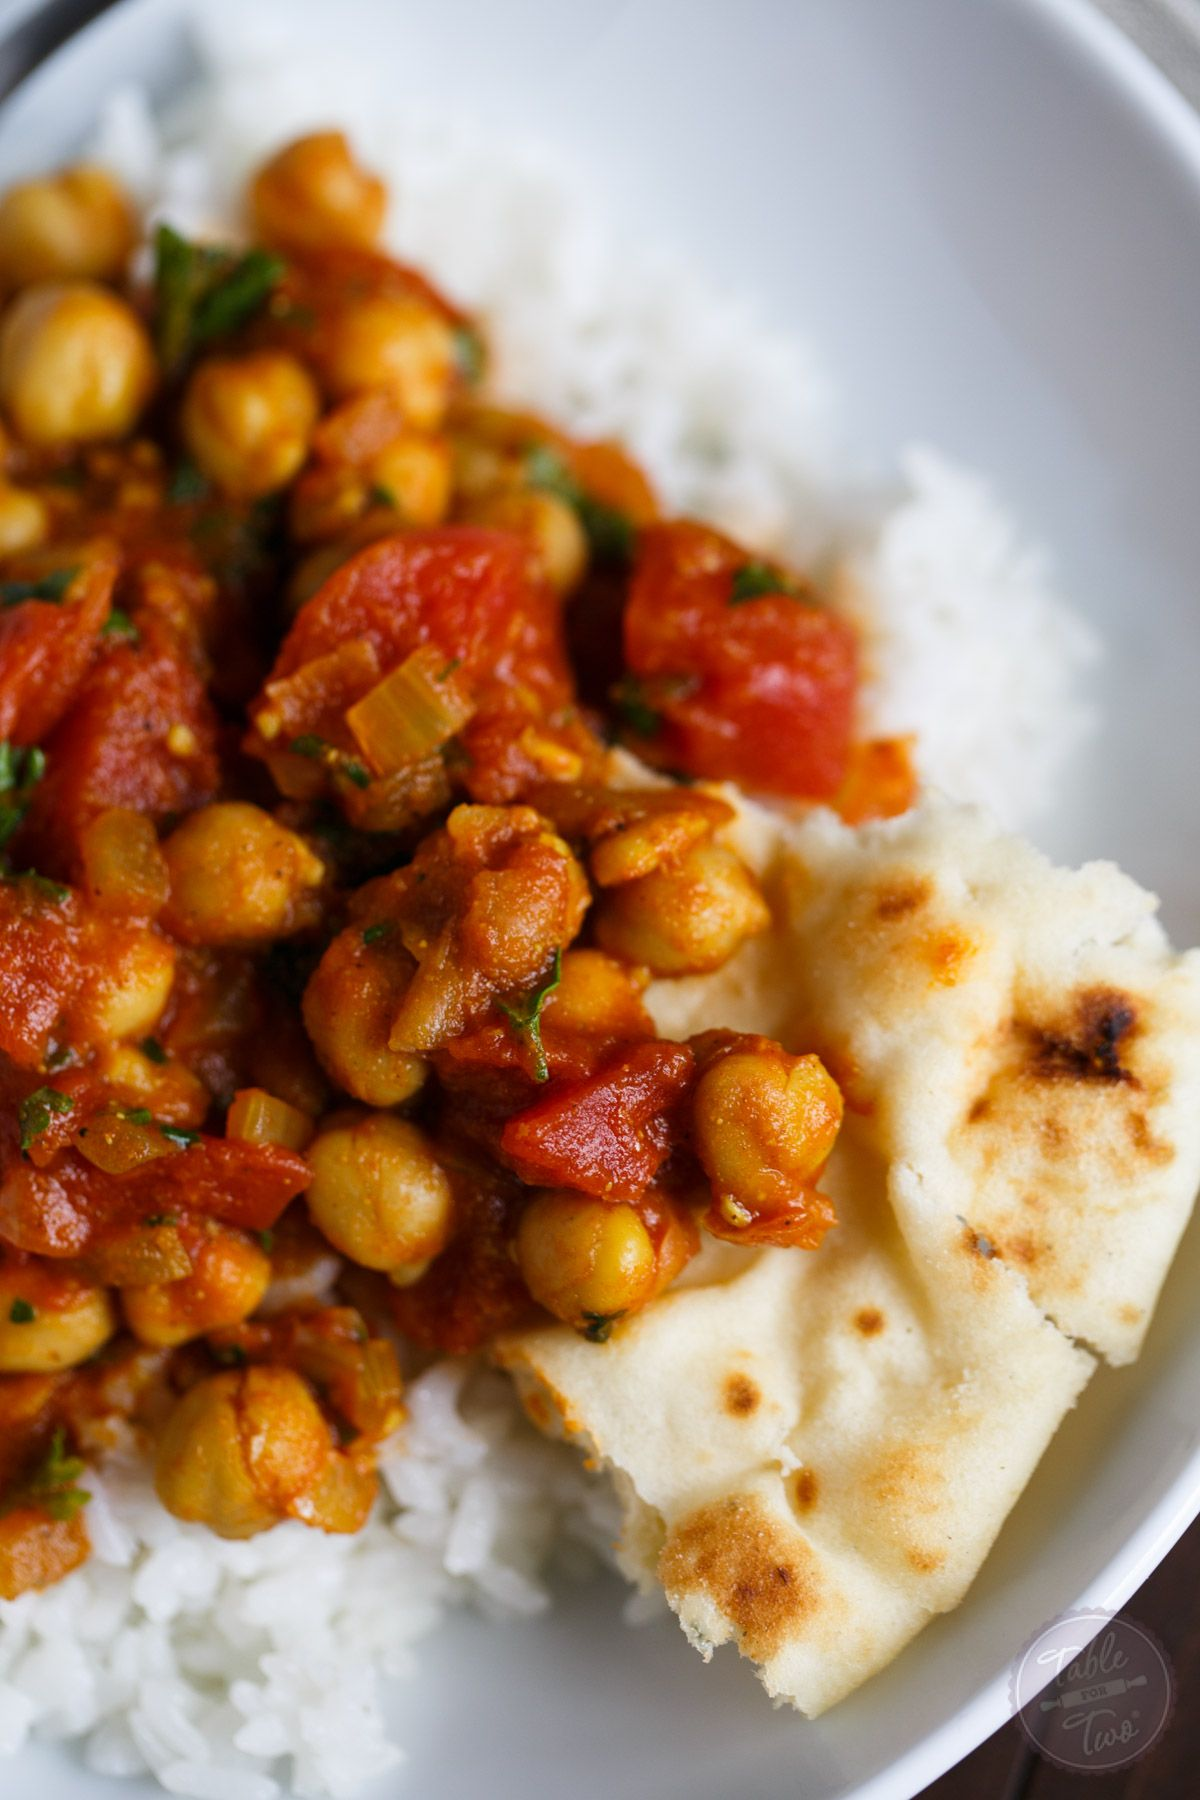 If you love indian flavors chana masala is a quick and easy way to if you love indian flavors chana masala is a quick and easy way to enjoy forumfinder Image collections